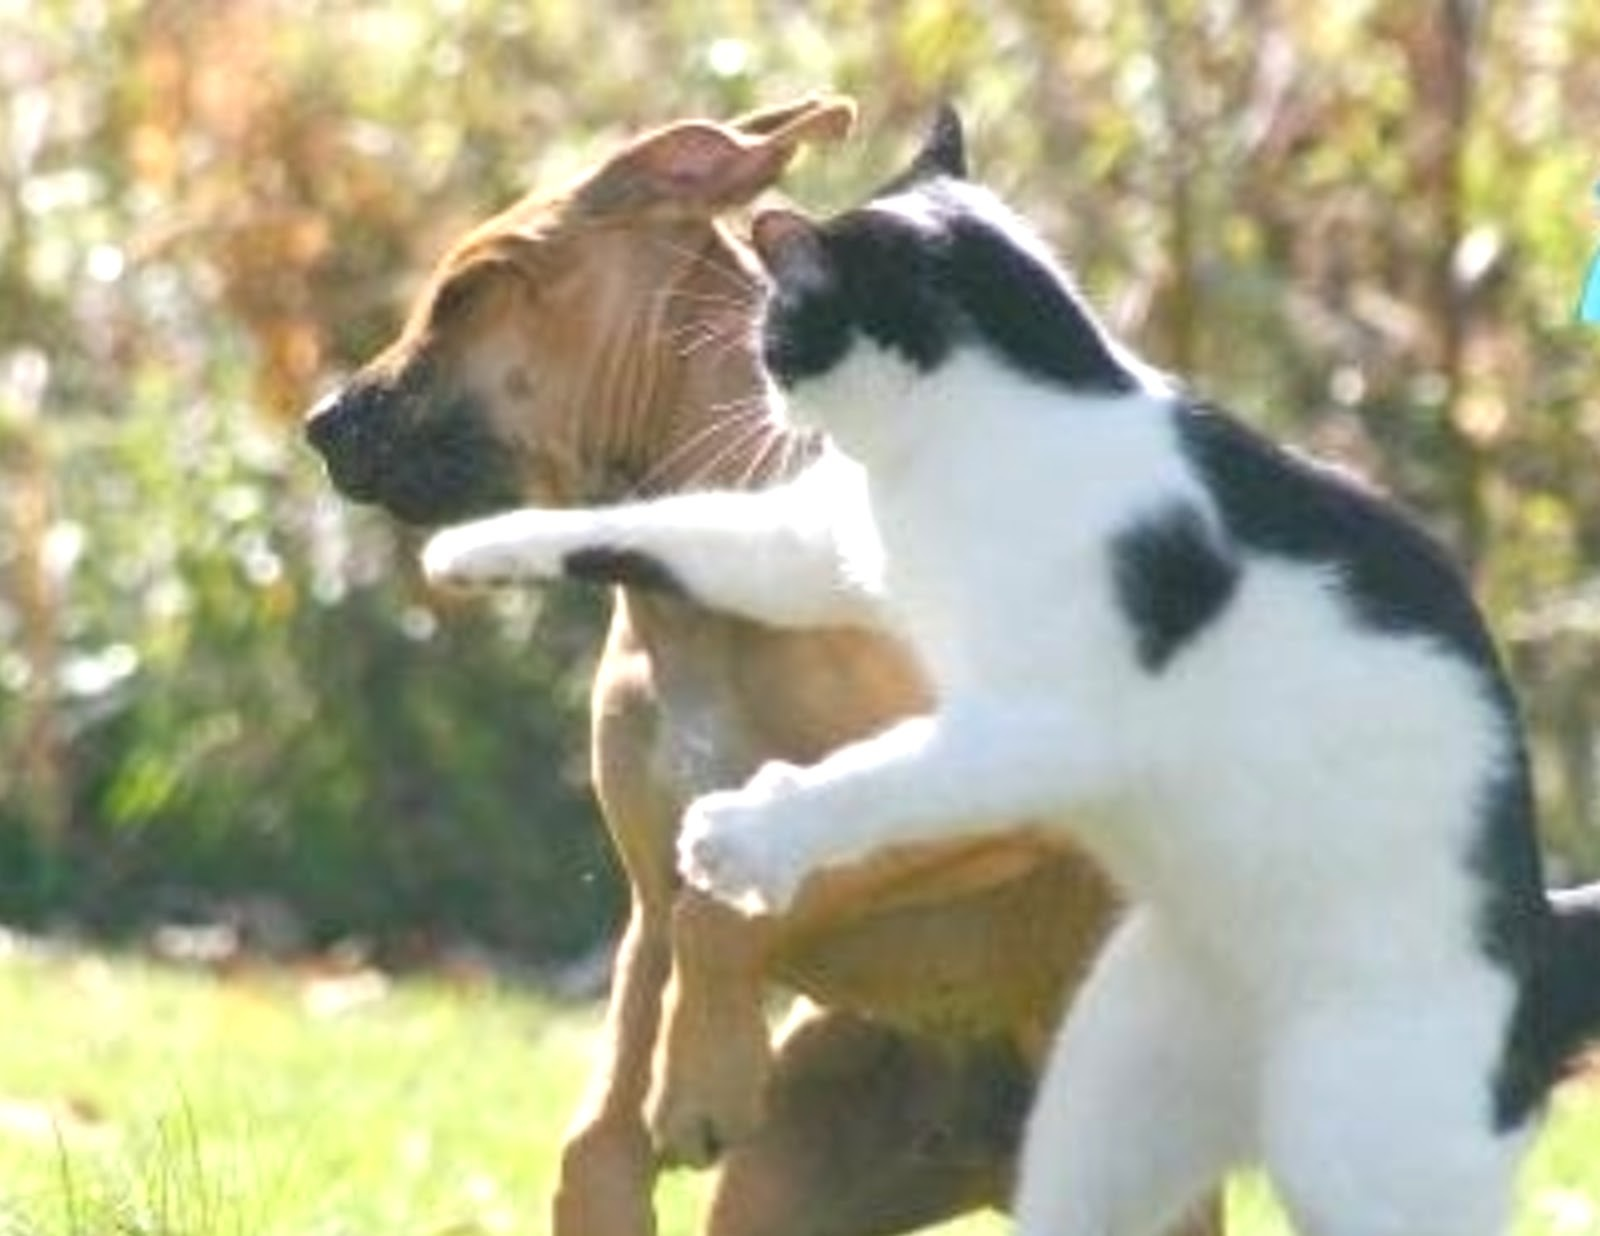 Cats In A Dog Fight